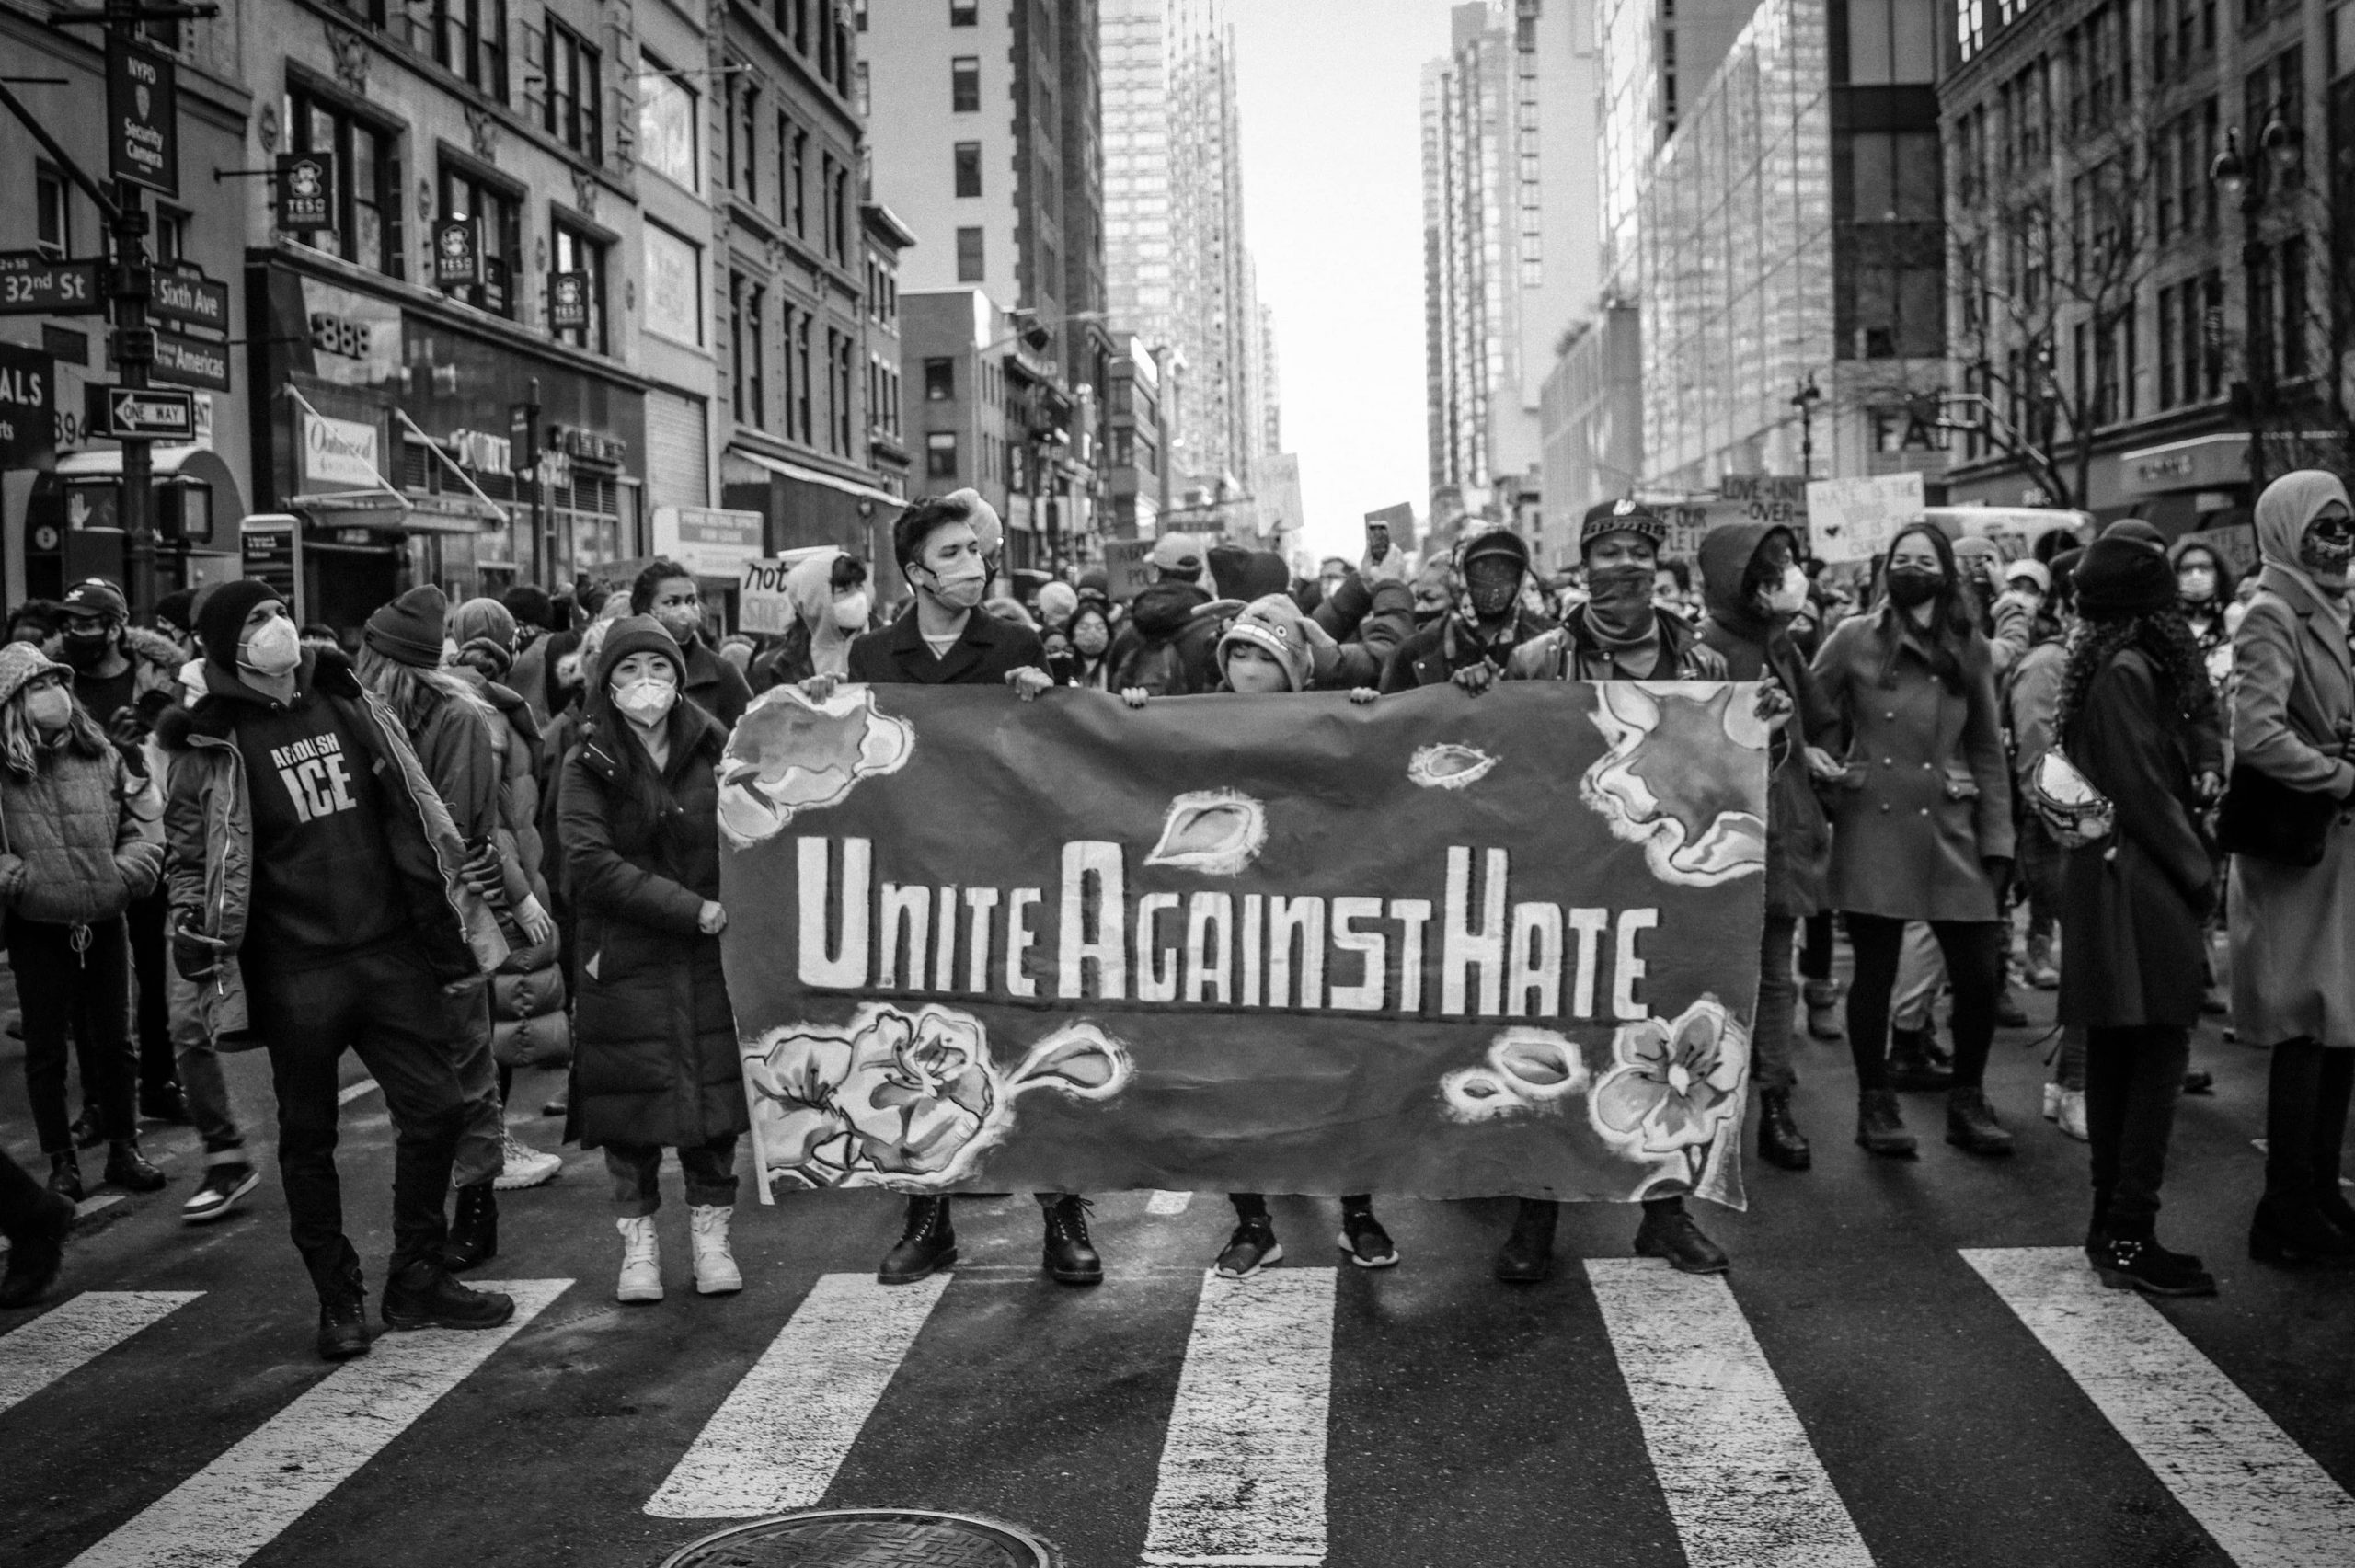 Protestors in New York City marching in the streets at the End Violence Against Asians rally. Four protestors carry a banner reading 'Unite Against Hate'